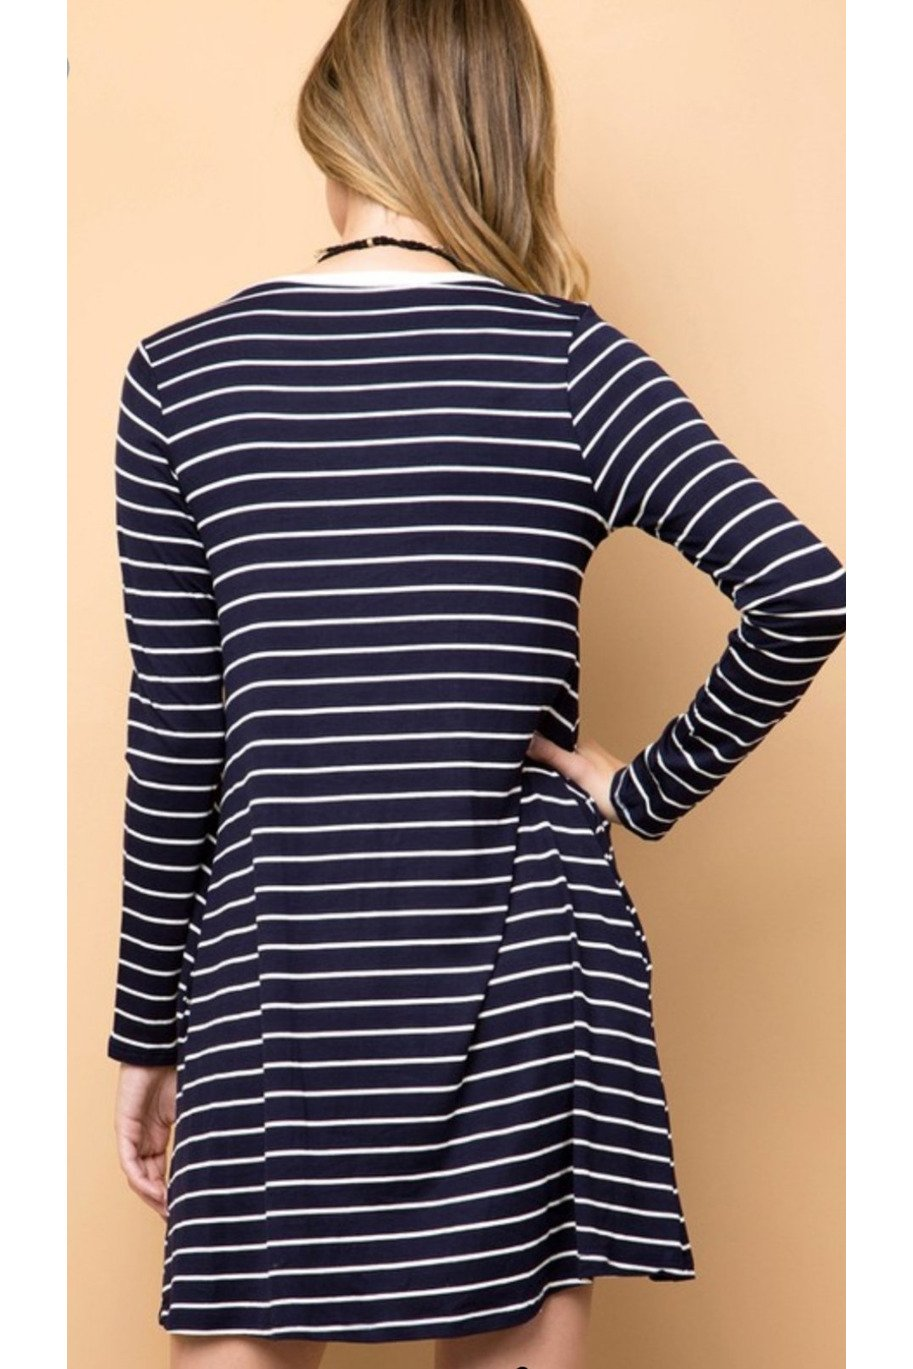 Christa striped dress in navy *Final Sale*